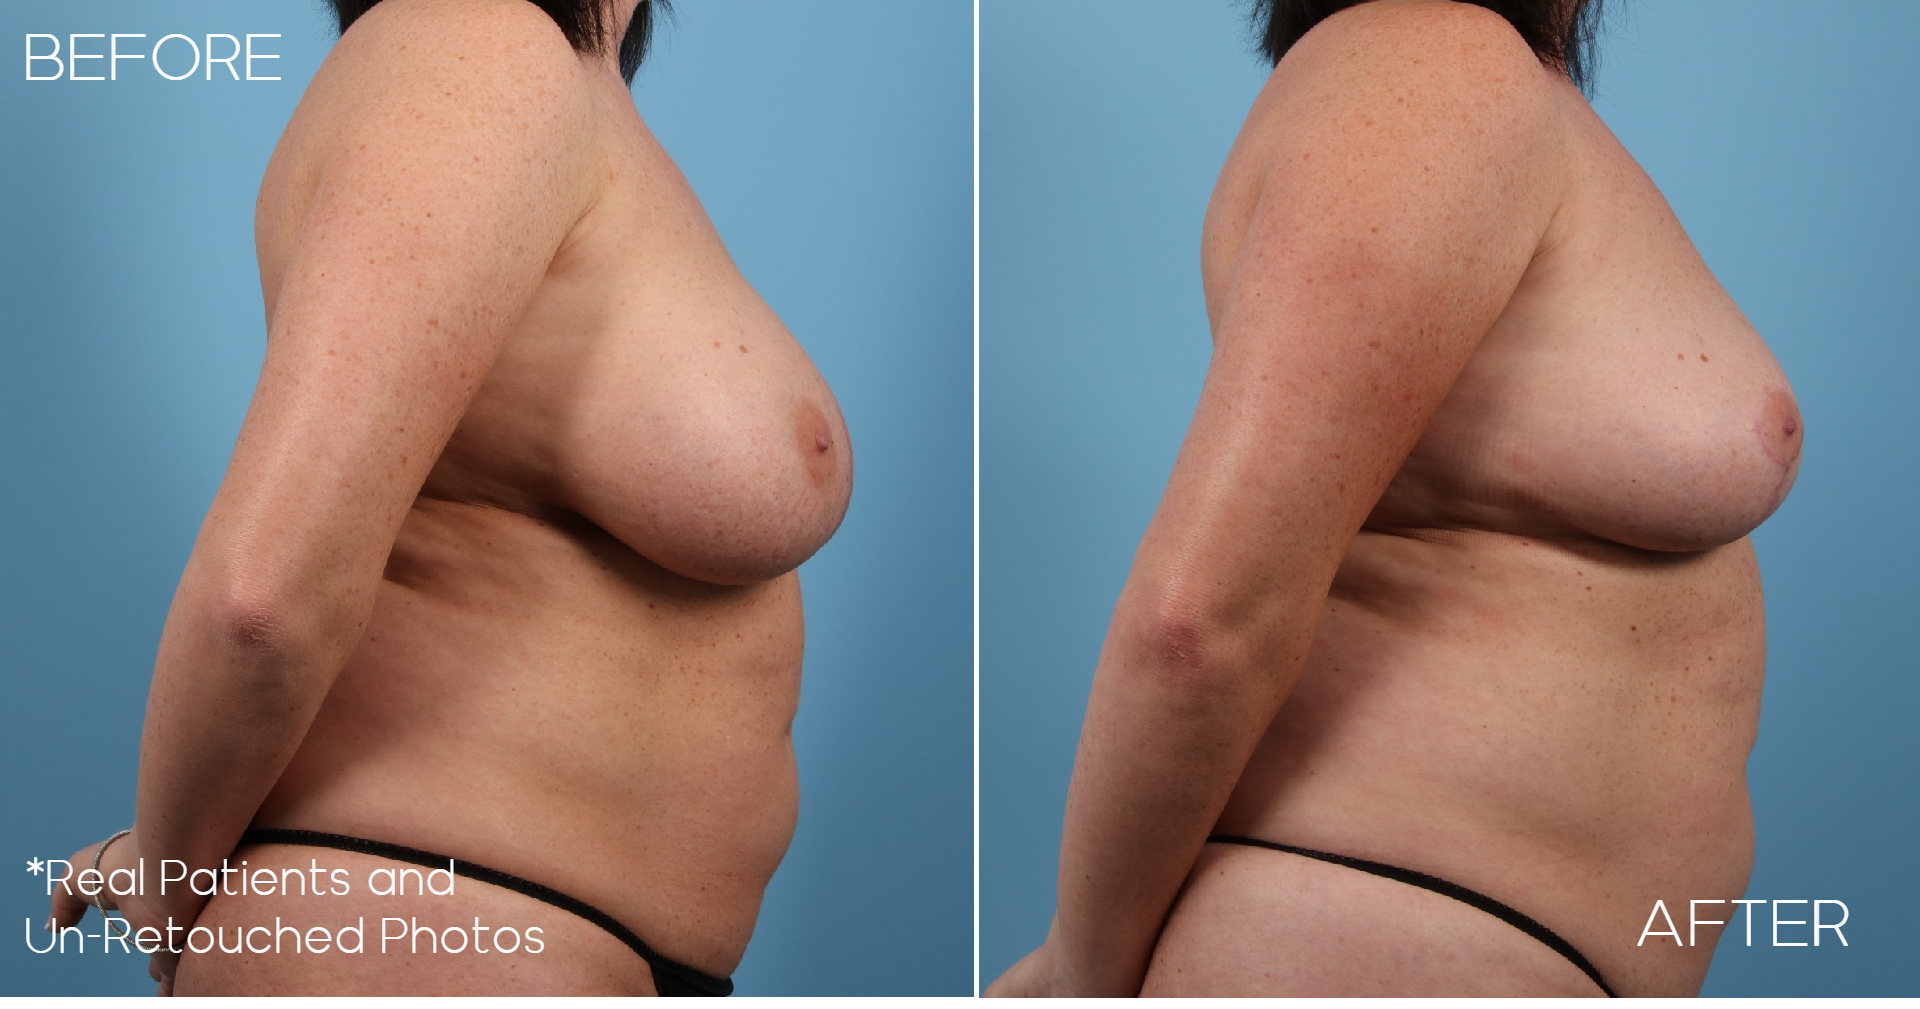 Case-987-Breast-Implant-Removal-Breast-Lift-Side-Before-and-After